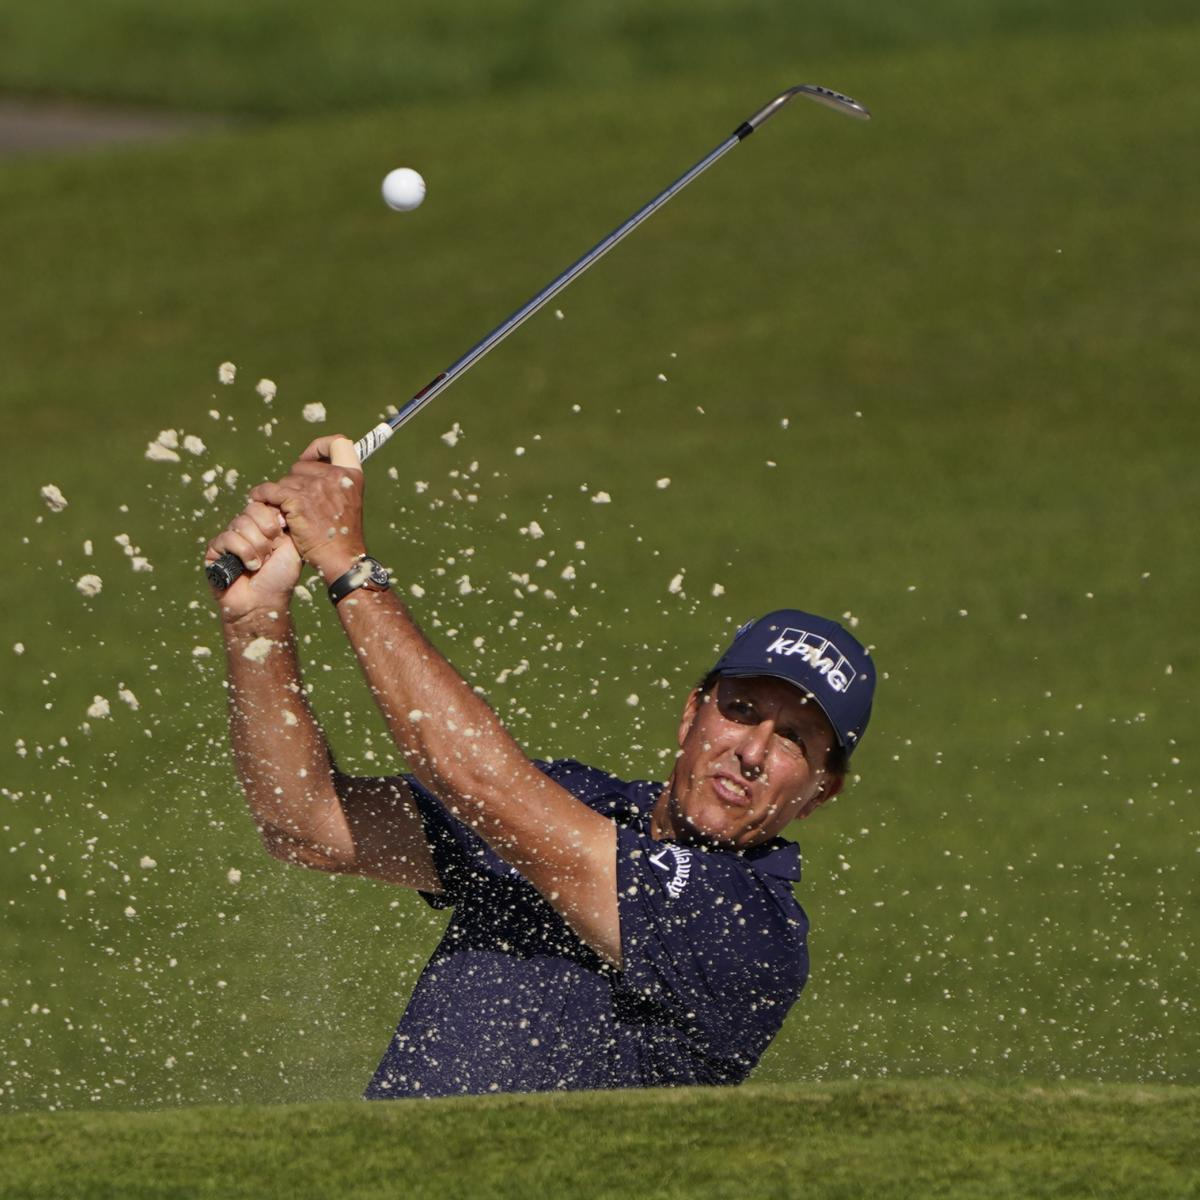 Phil Mickelson, Charles Barkley Win Capital One's 'The Match' vs. Manning, Curry